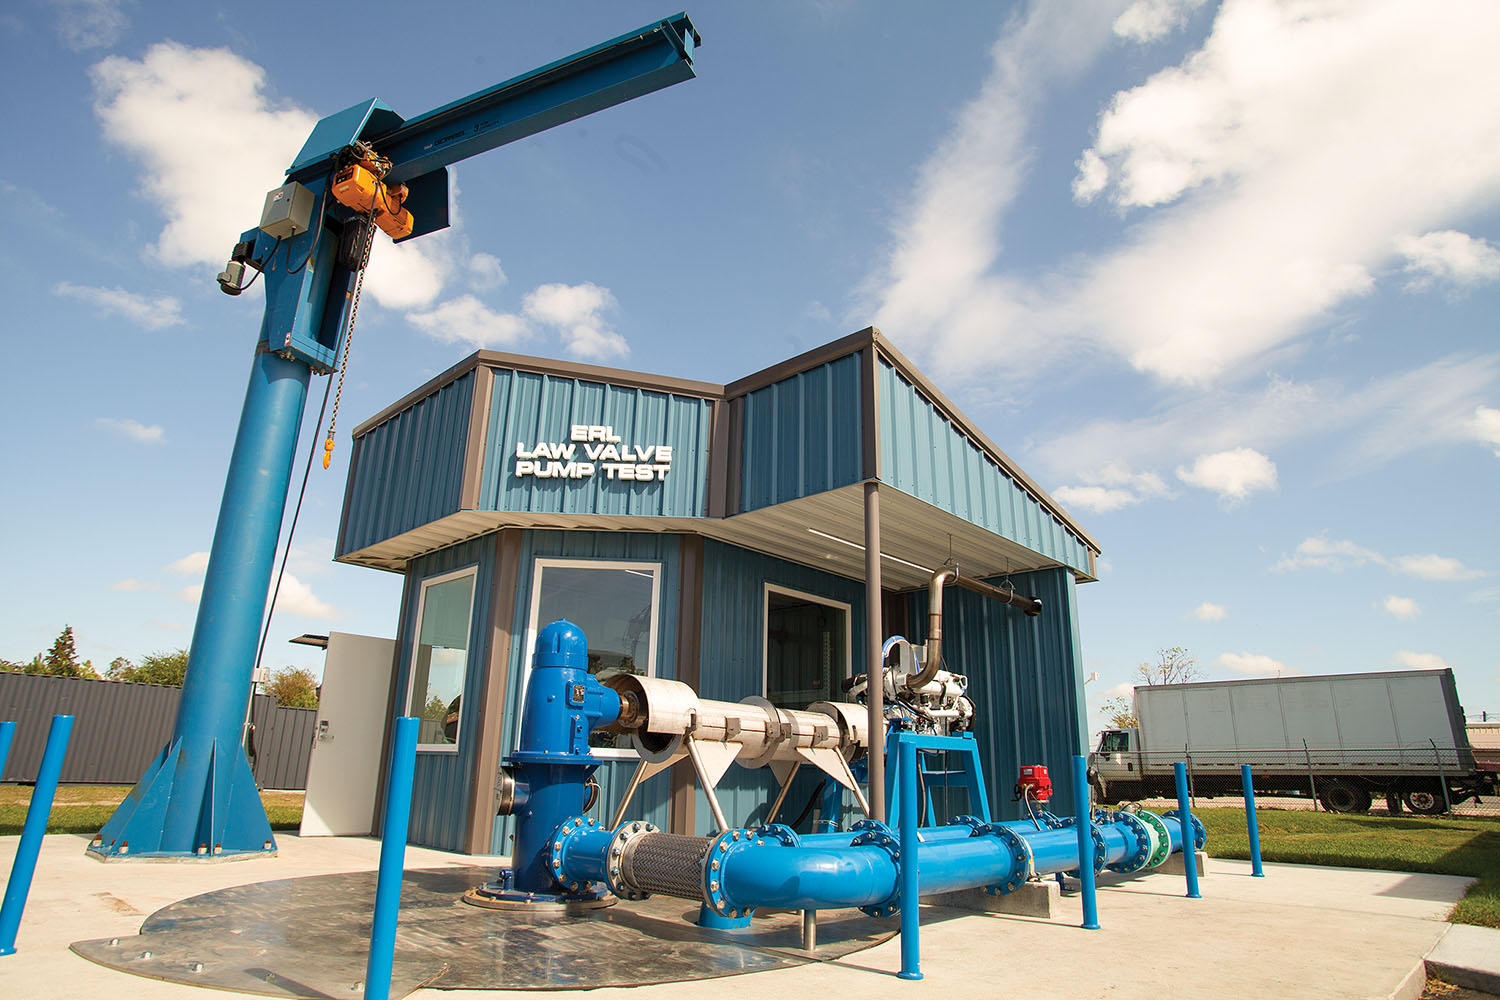 ERL/Law Valve of Texas' new pump test system. (Photo by Frank McCormack)